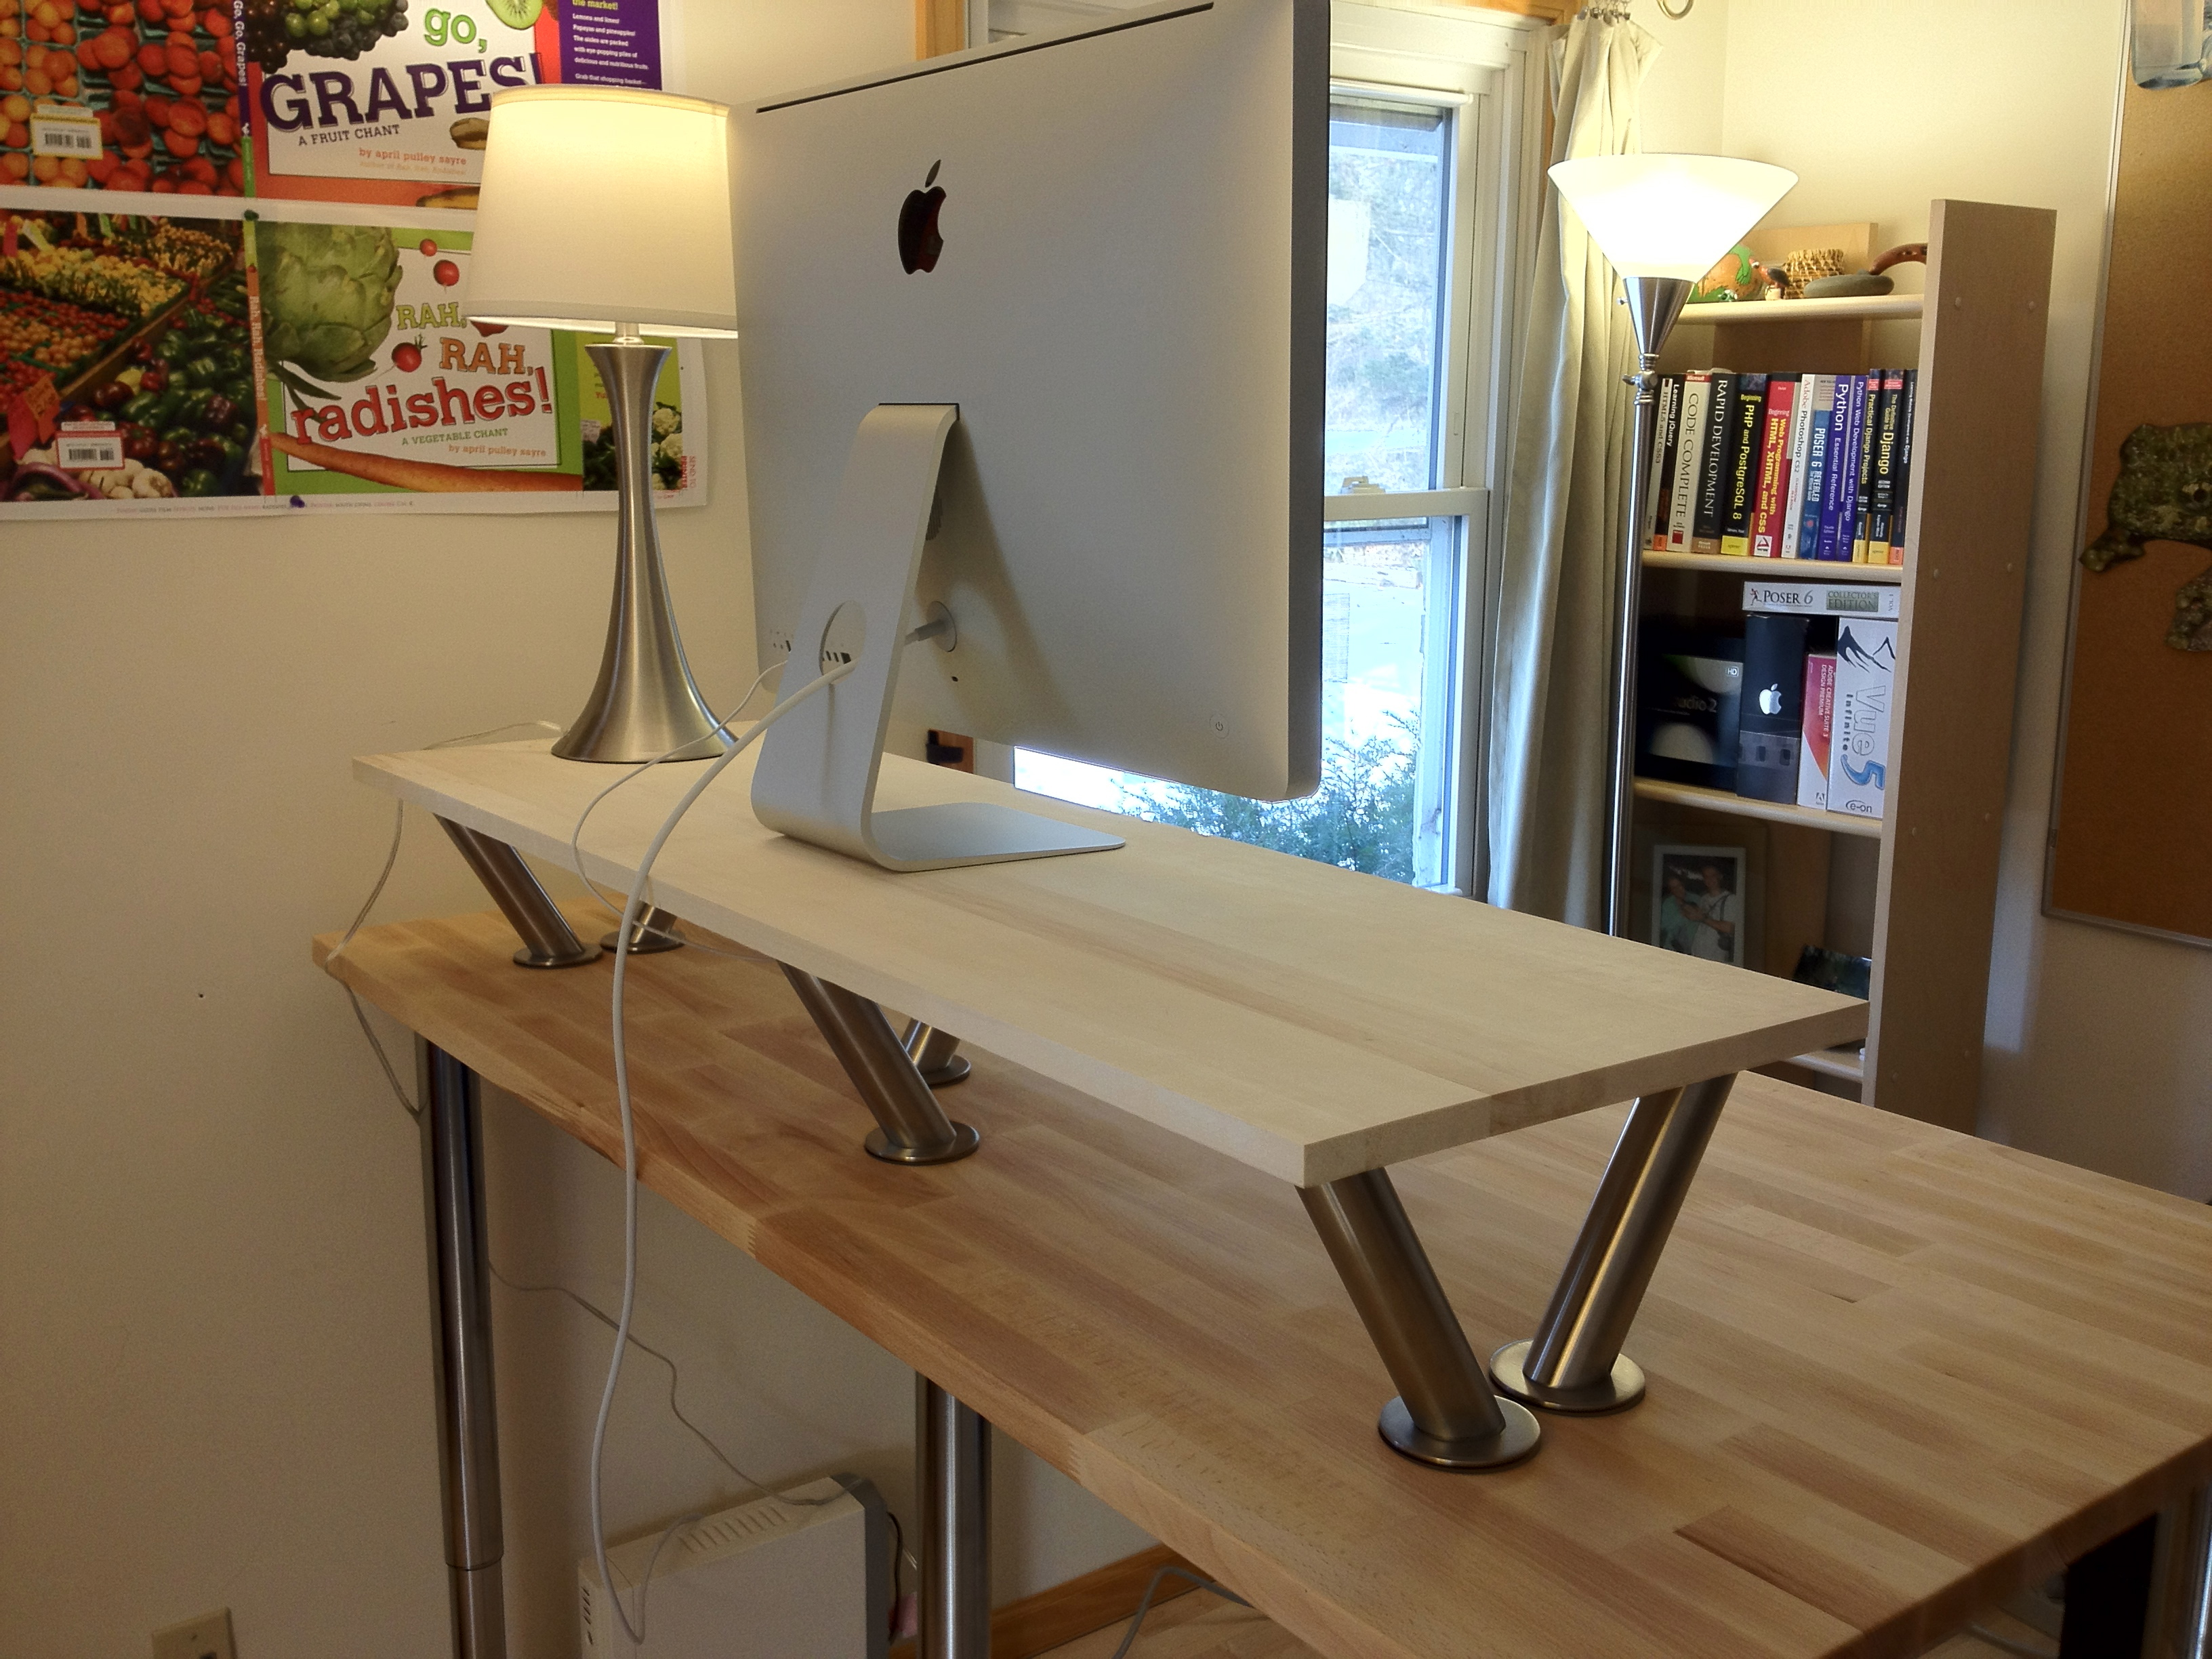 Modern Ikea Stand Up Desk Design From Wood With Double Tops And Unique Stainless Steel Pole